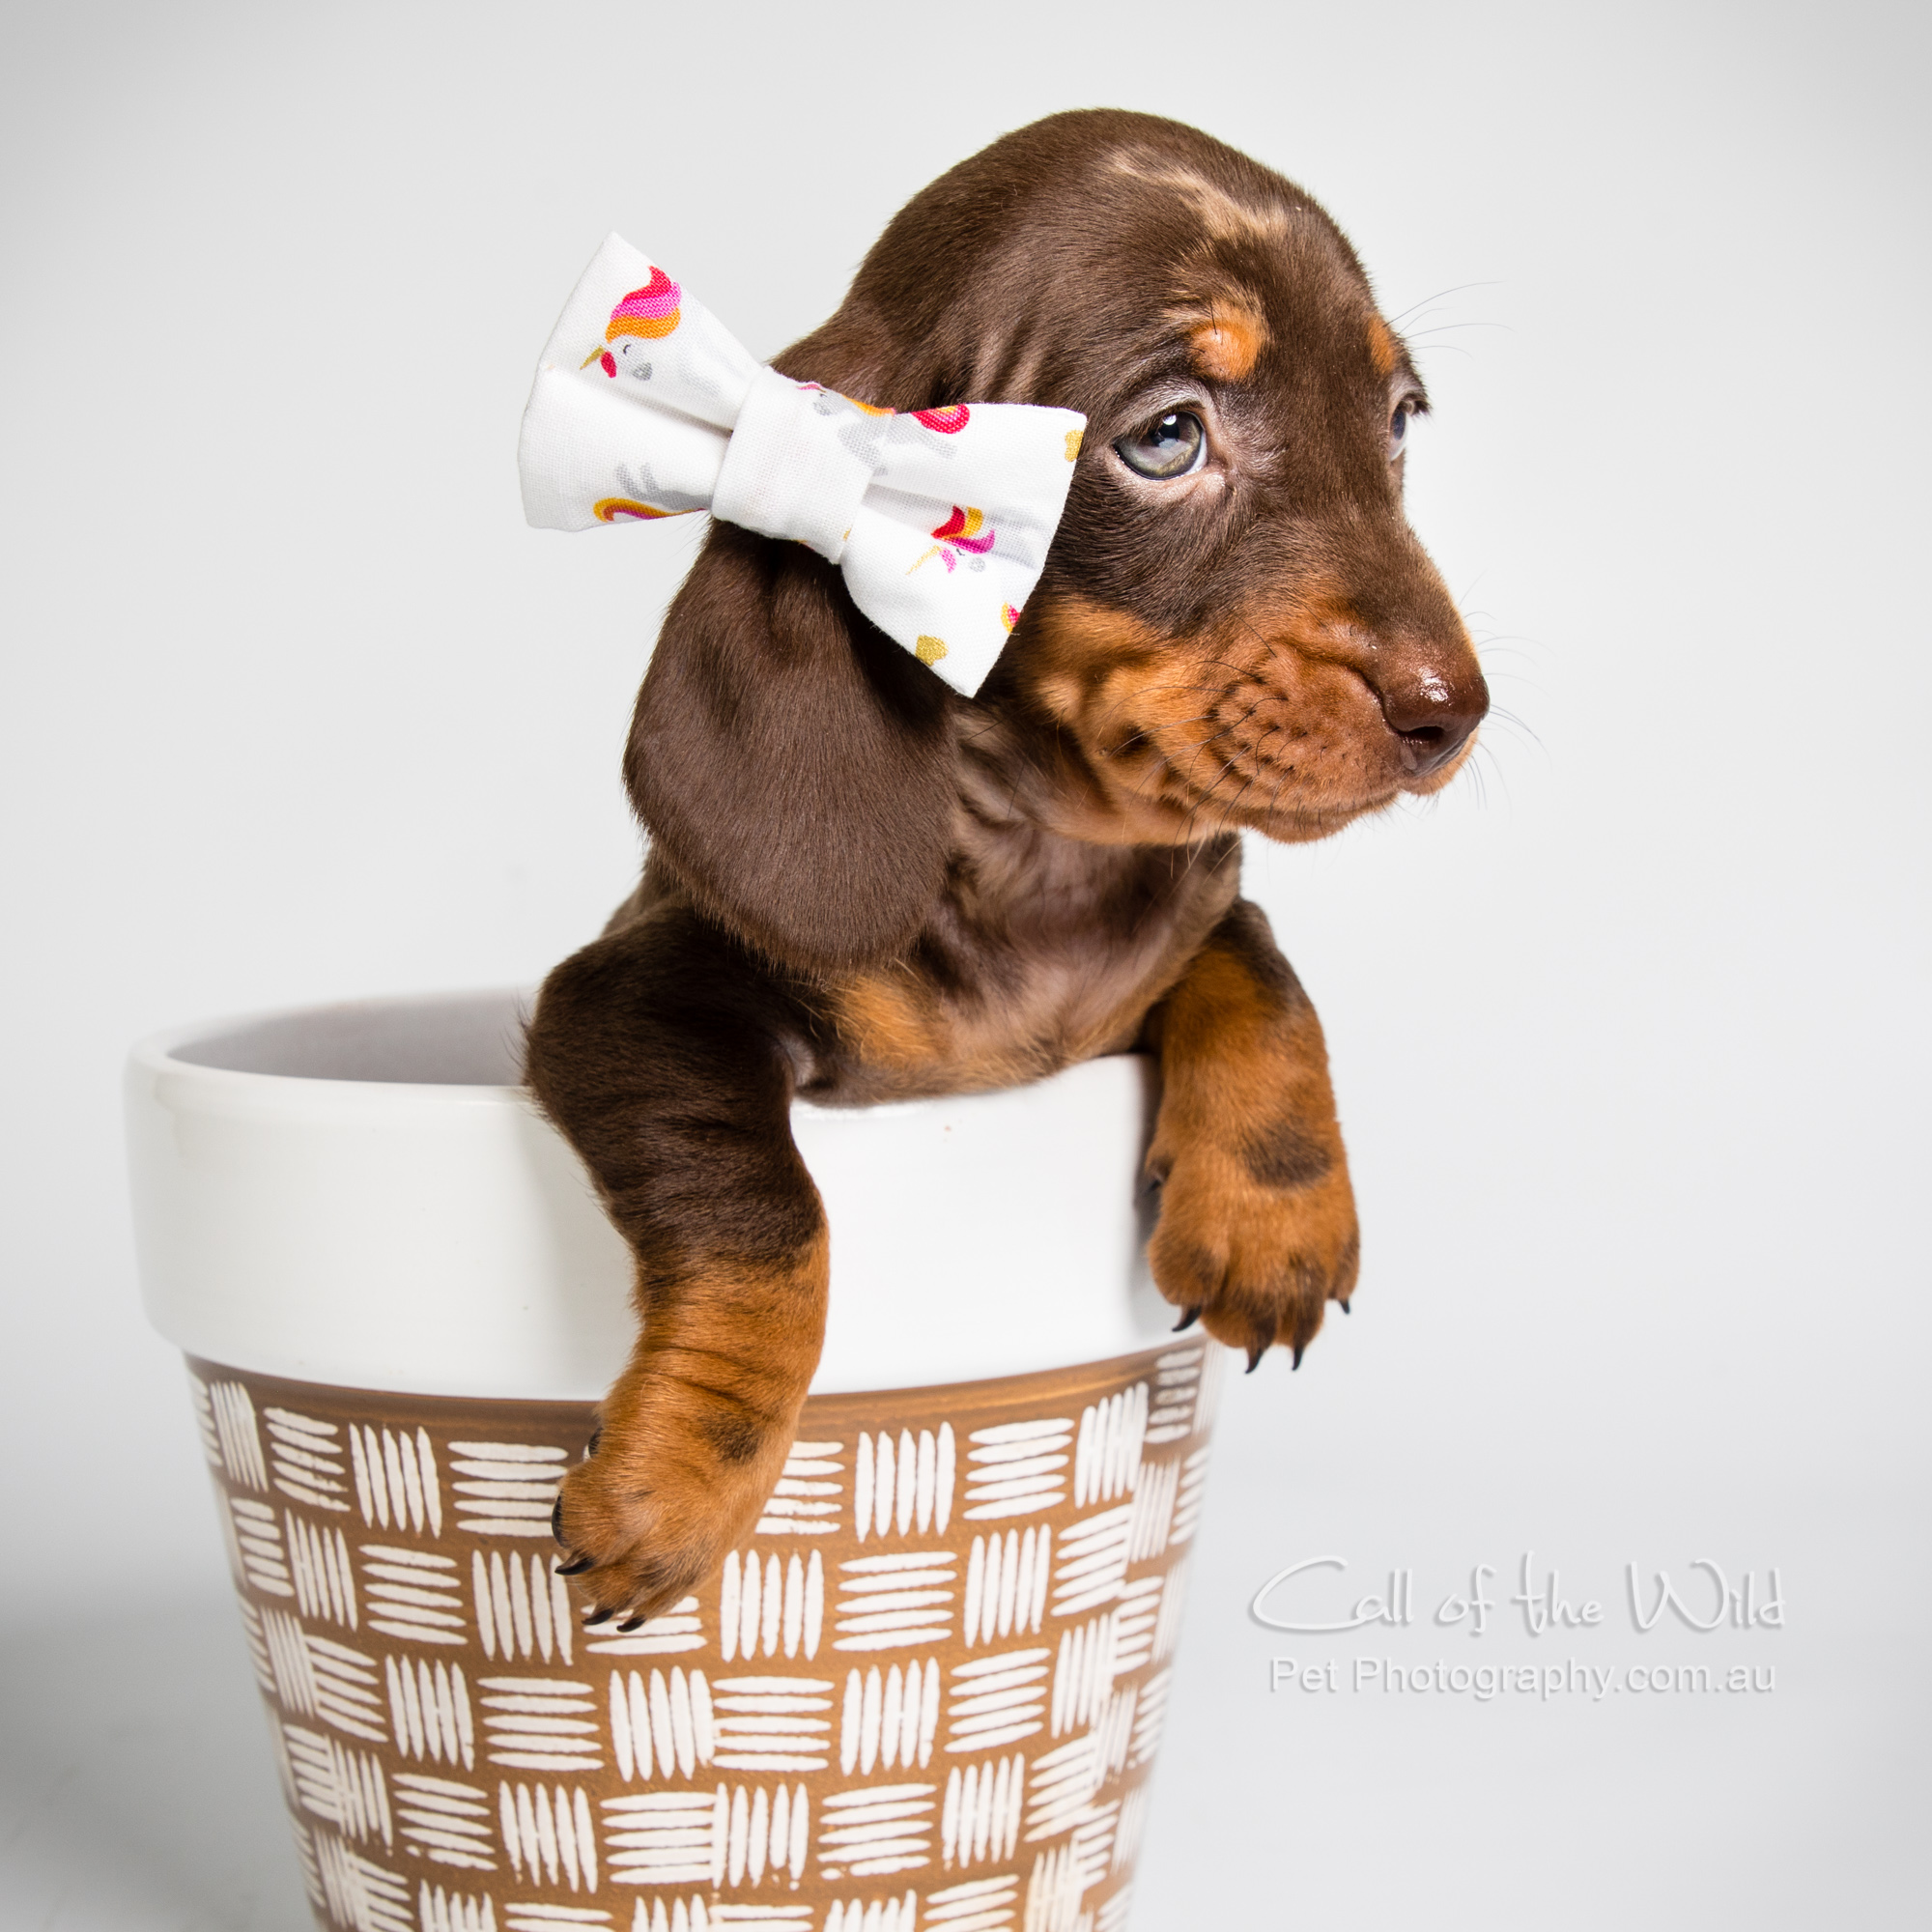 Doxie puppies for Dapperdorable - ★★★★★ 4 months agoYet again another superb experience with Annabel! Cannot recommend her enough, and have tried several other photographers too - no-one compares!! Annabel made my vision come to life without needing to go into too much detail, was kind and understanding and made the whole experience so much fun. Love working with her and can't wait to do so again in the future. Her work is BRILLIANT, look no further!! Steph Caruana